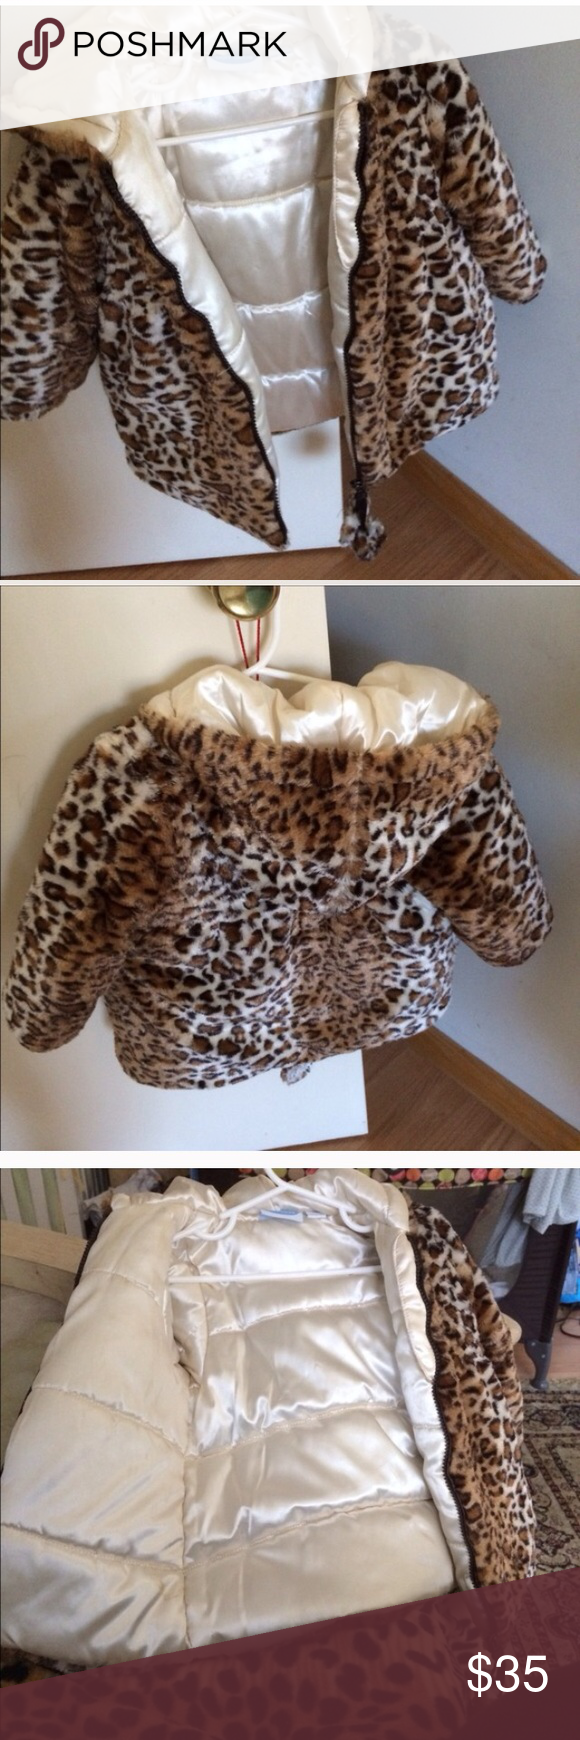 Leopard 3t toddler coat Gently used tassels need to be filled with cotton and sewed.  Tassels can be removed if you don't want to fix them Jackets & Coats